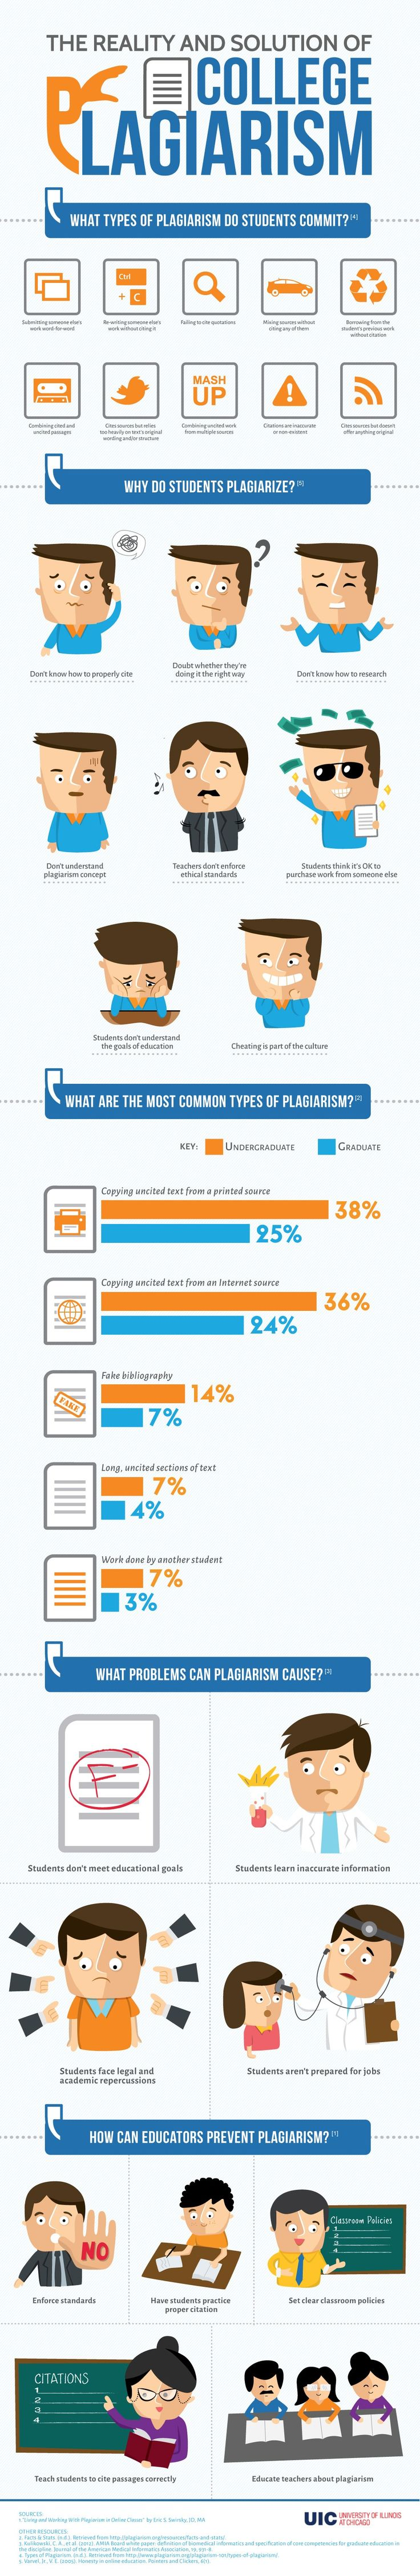 Why Students Plagiarize And What Schools Can Do To Stop It (INFOGRAPHIC)